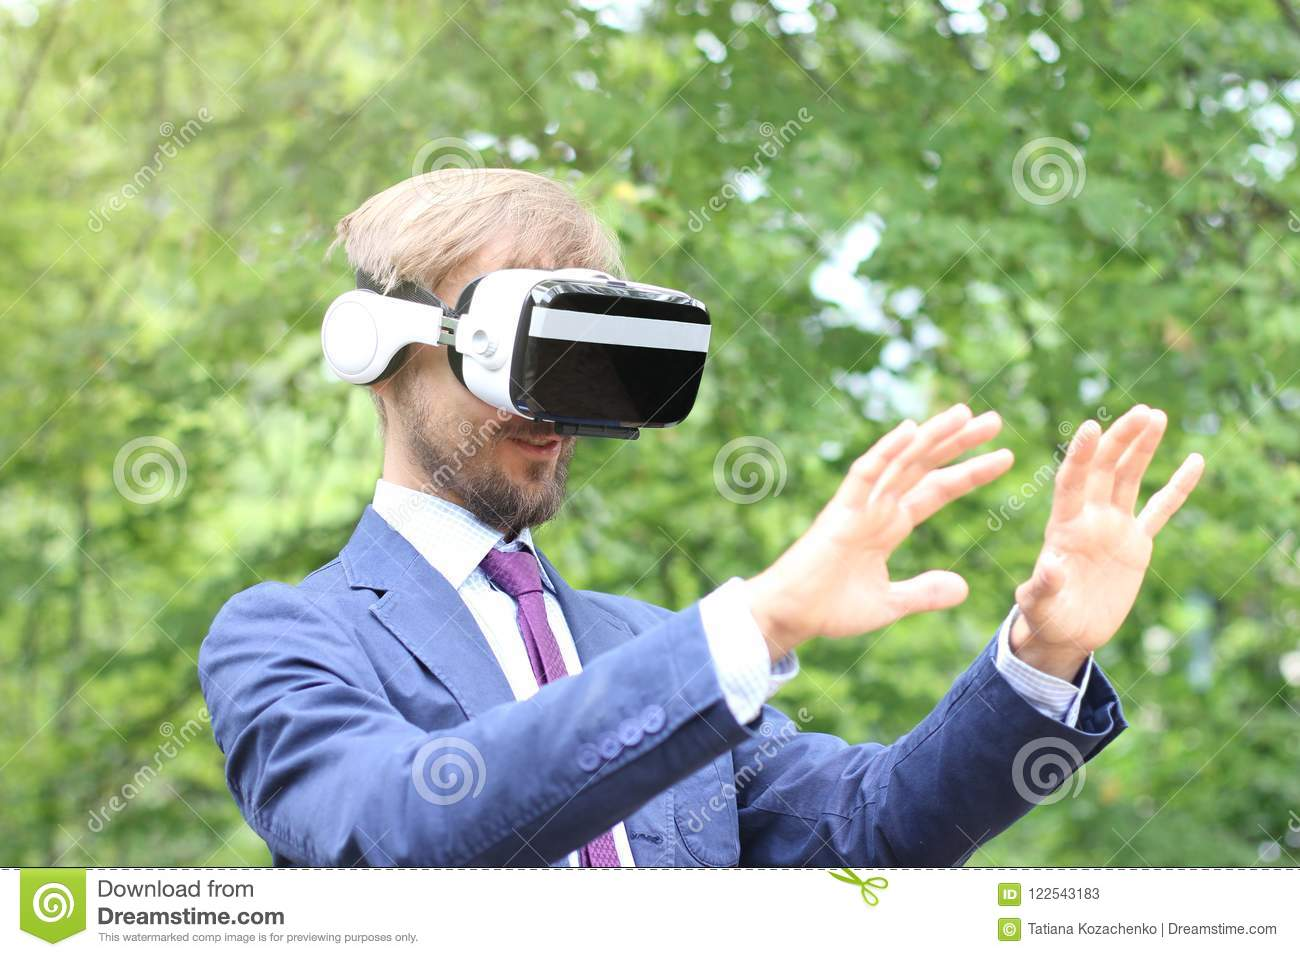 335b5790f5e7 Young bearded smiling man in suit uses virtual reality glasses outdoor.  Future technology concept.